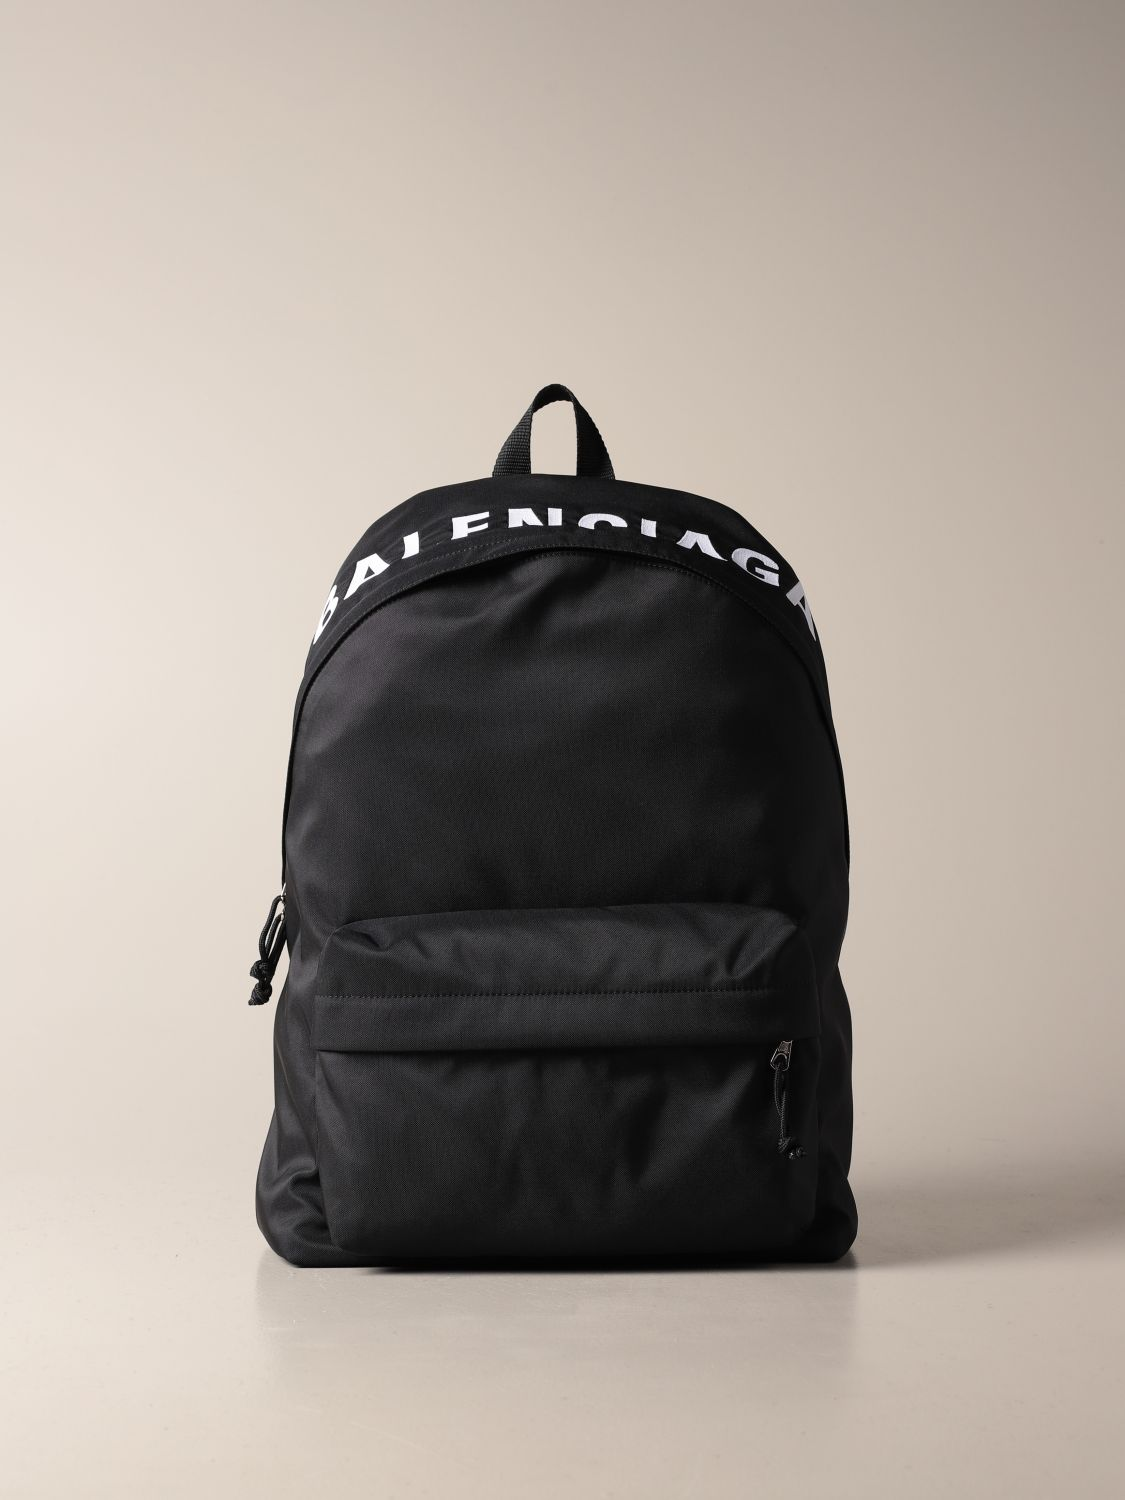 Shoulder bag Balenciaga: Balenciaga nylon backpack black 1